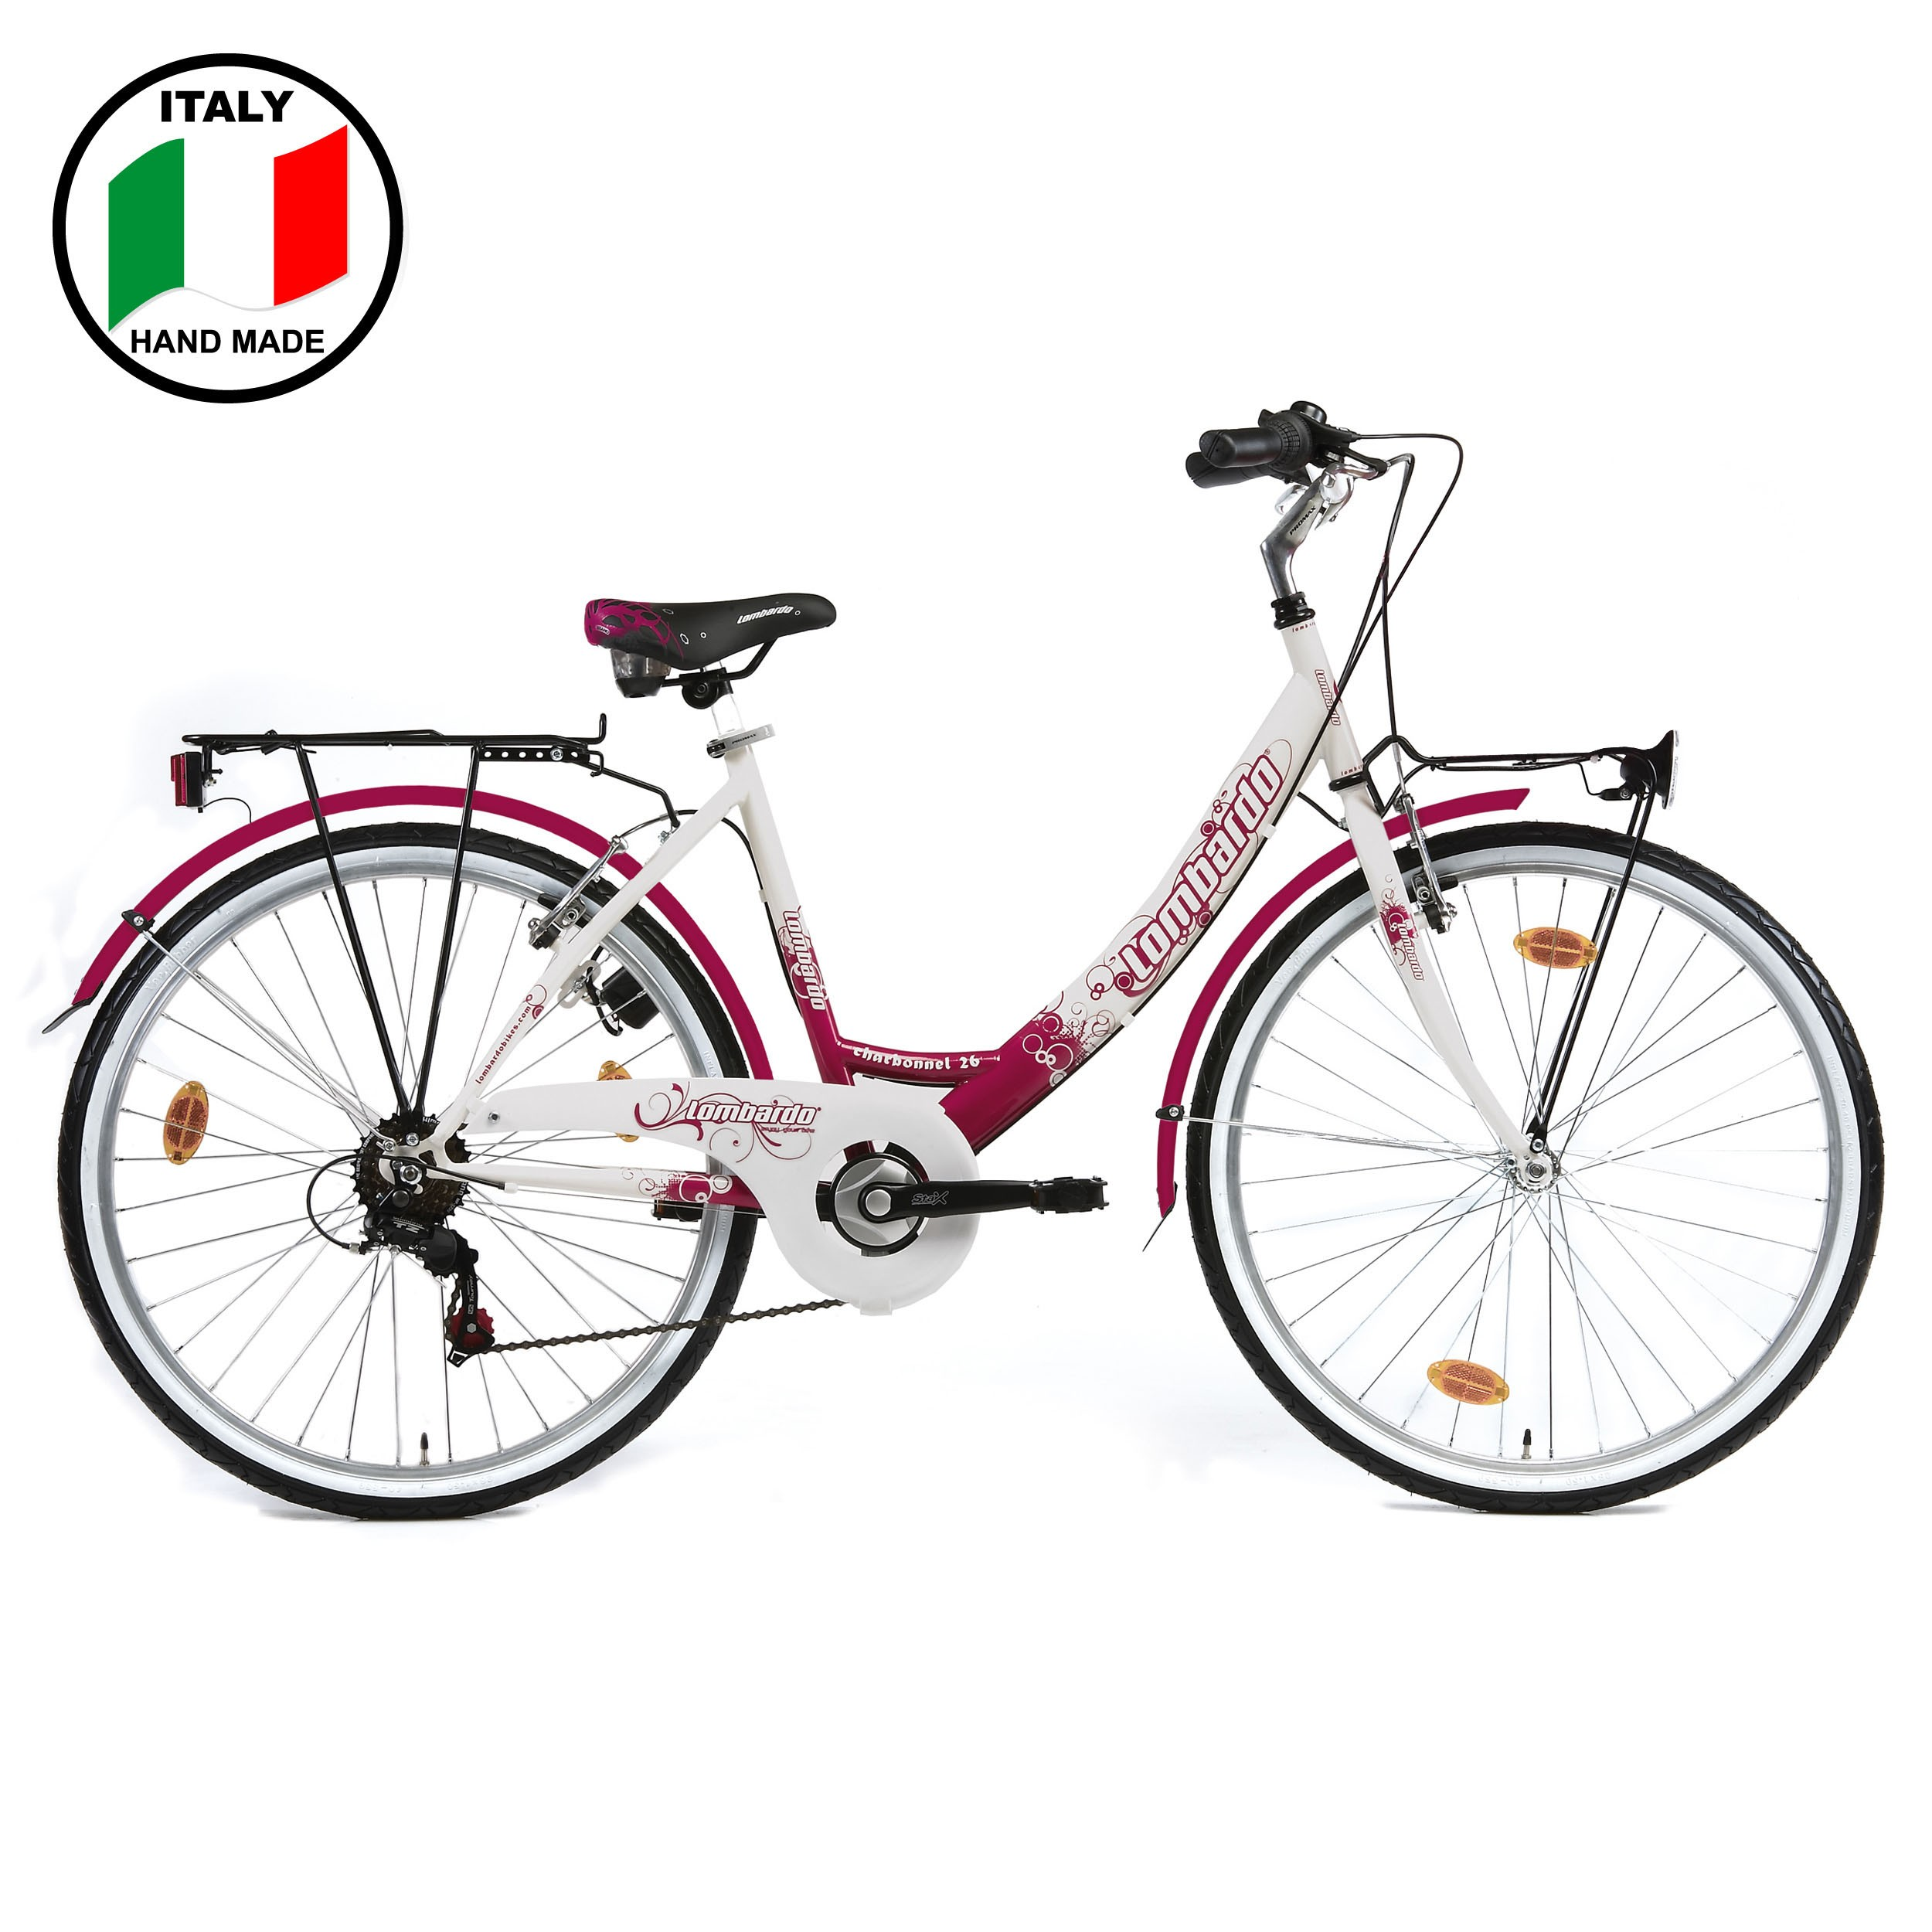 Lombardo Charbonnel 26 inch Bike- Fuchsia and White